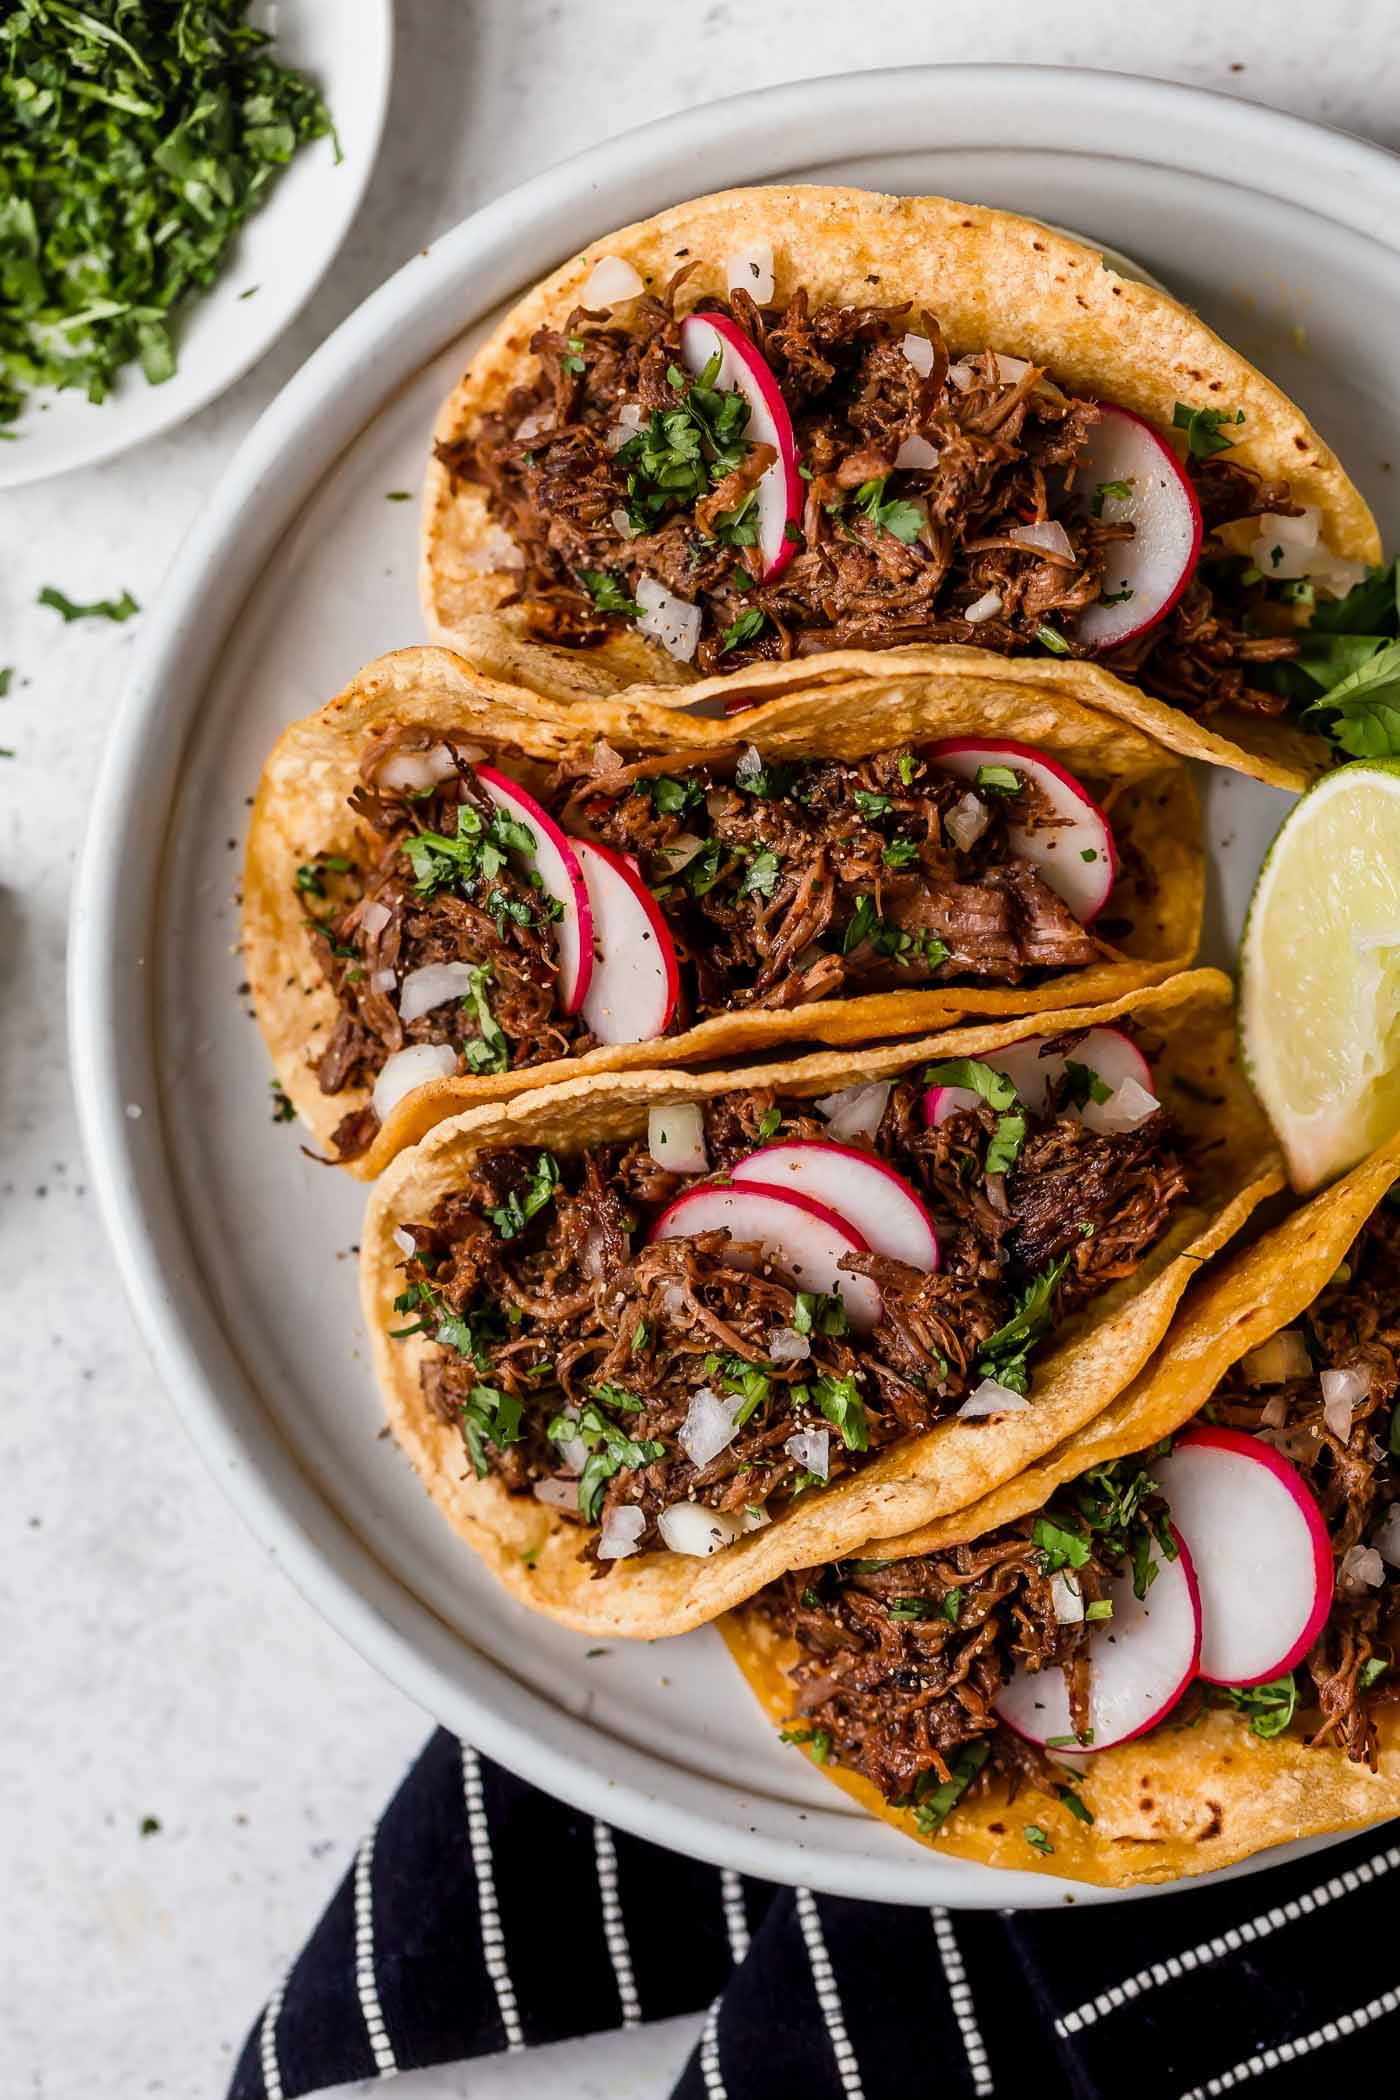 Barbacoa beef layered in corn tortillas to make tacos. Shown sitting on a light grey serving platter, beef is garnished with cilantro and radishes.